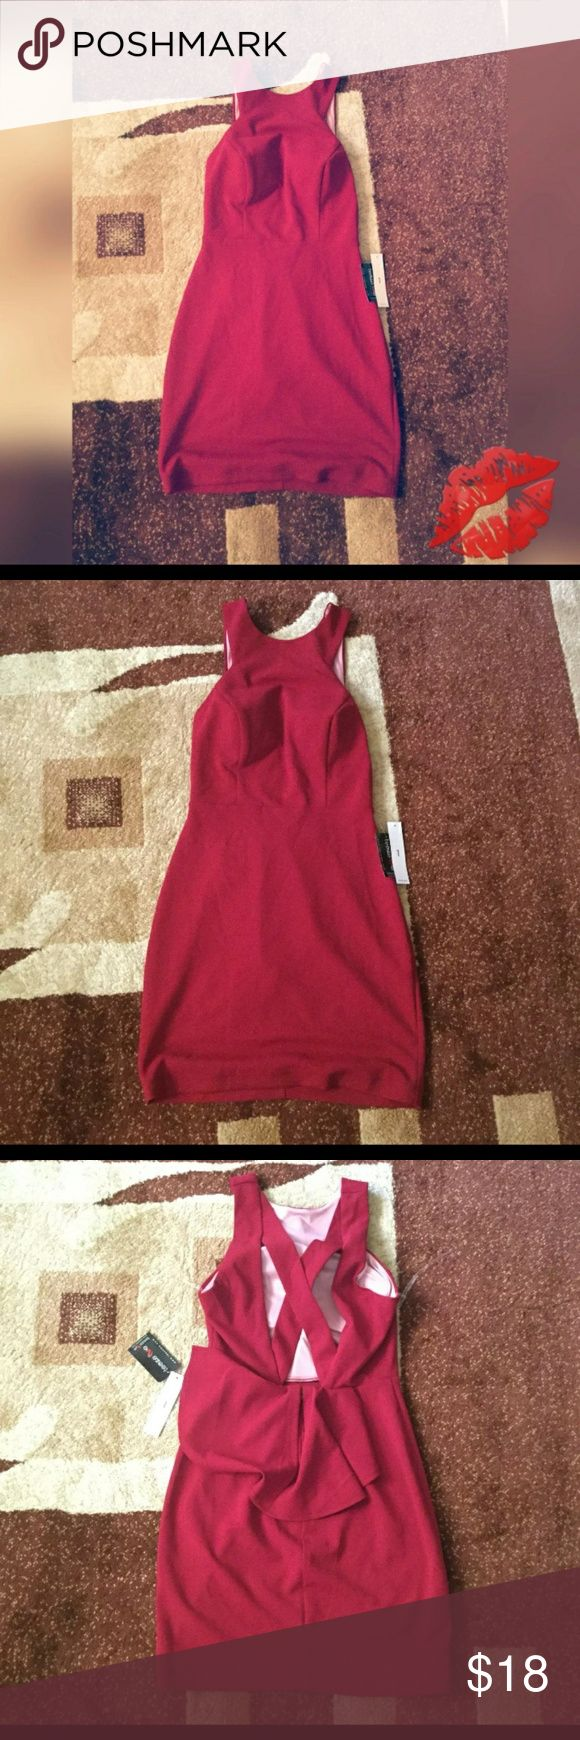 Teeze Me Red Dress Size 1/2 -New with tag - Don't need to wear a bra  Red color size 1/2 or x small Teeze Me Dresses Mini